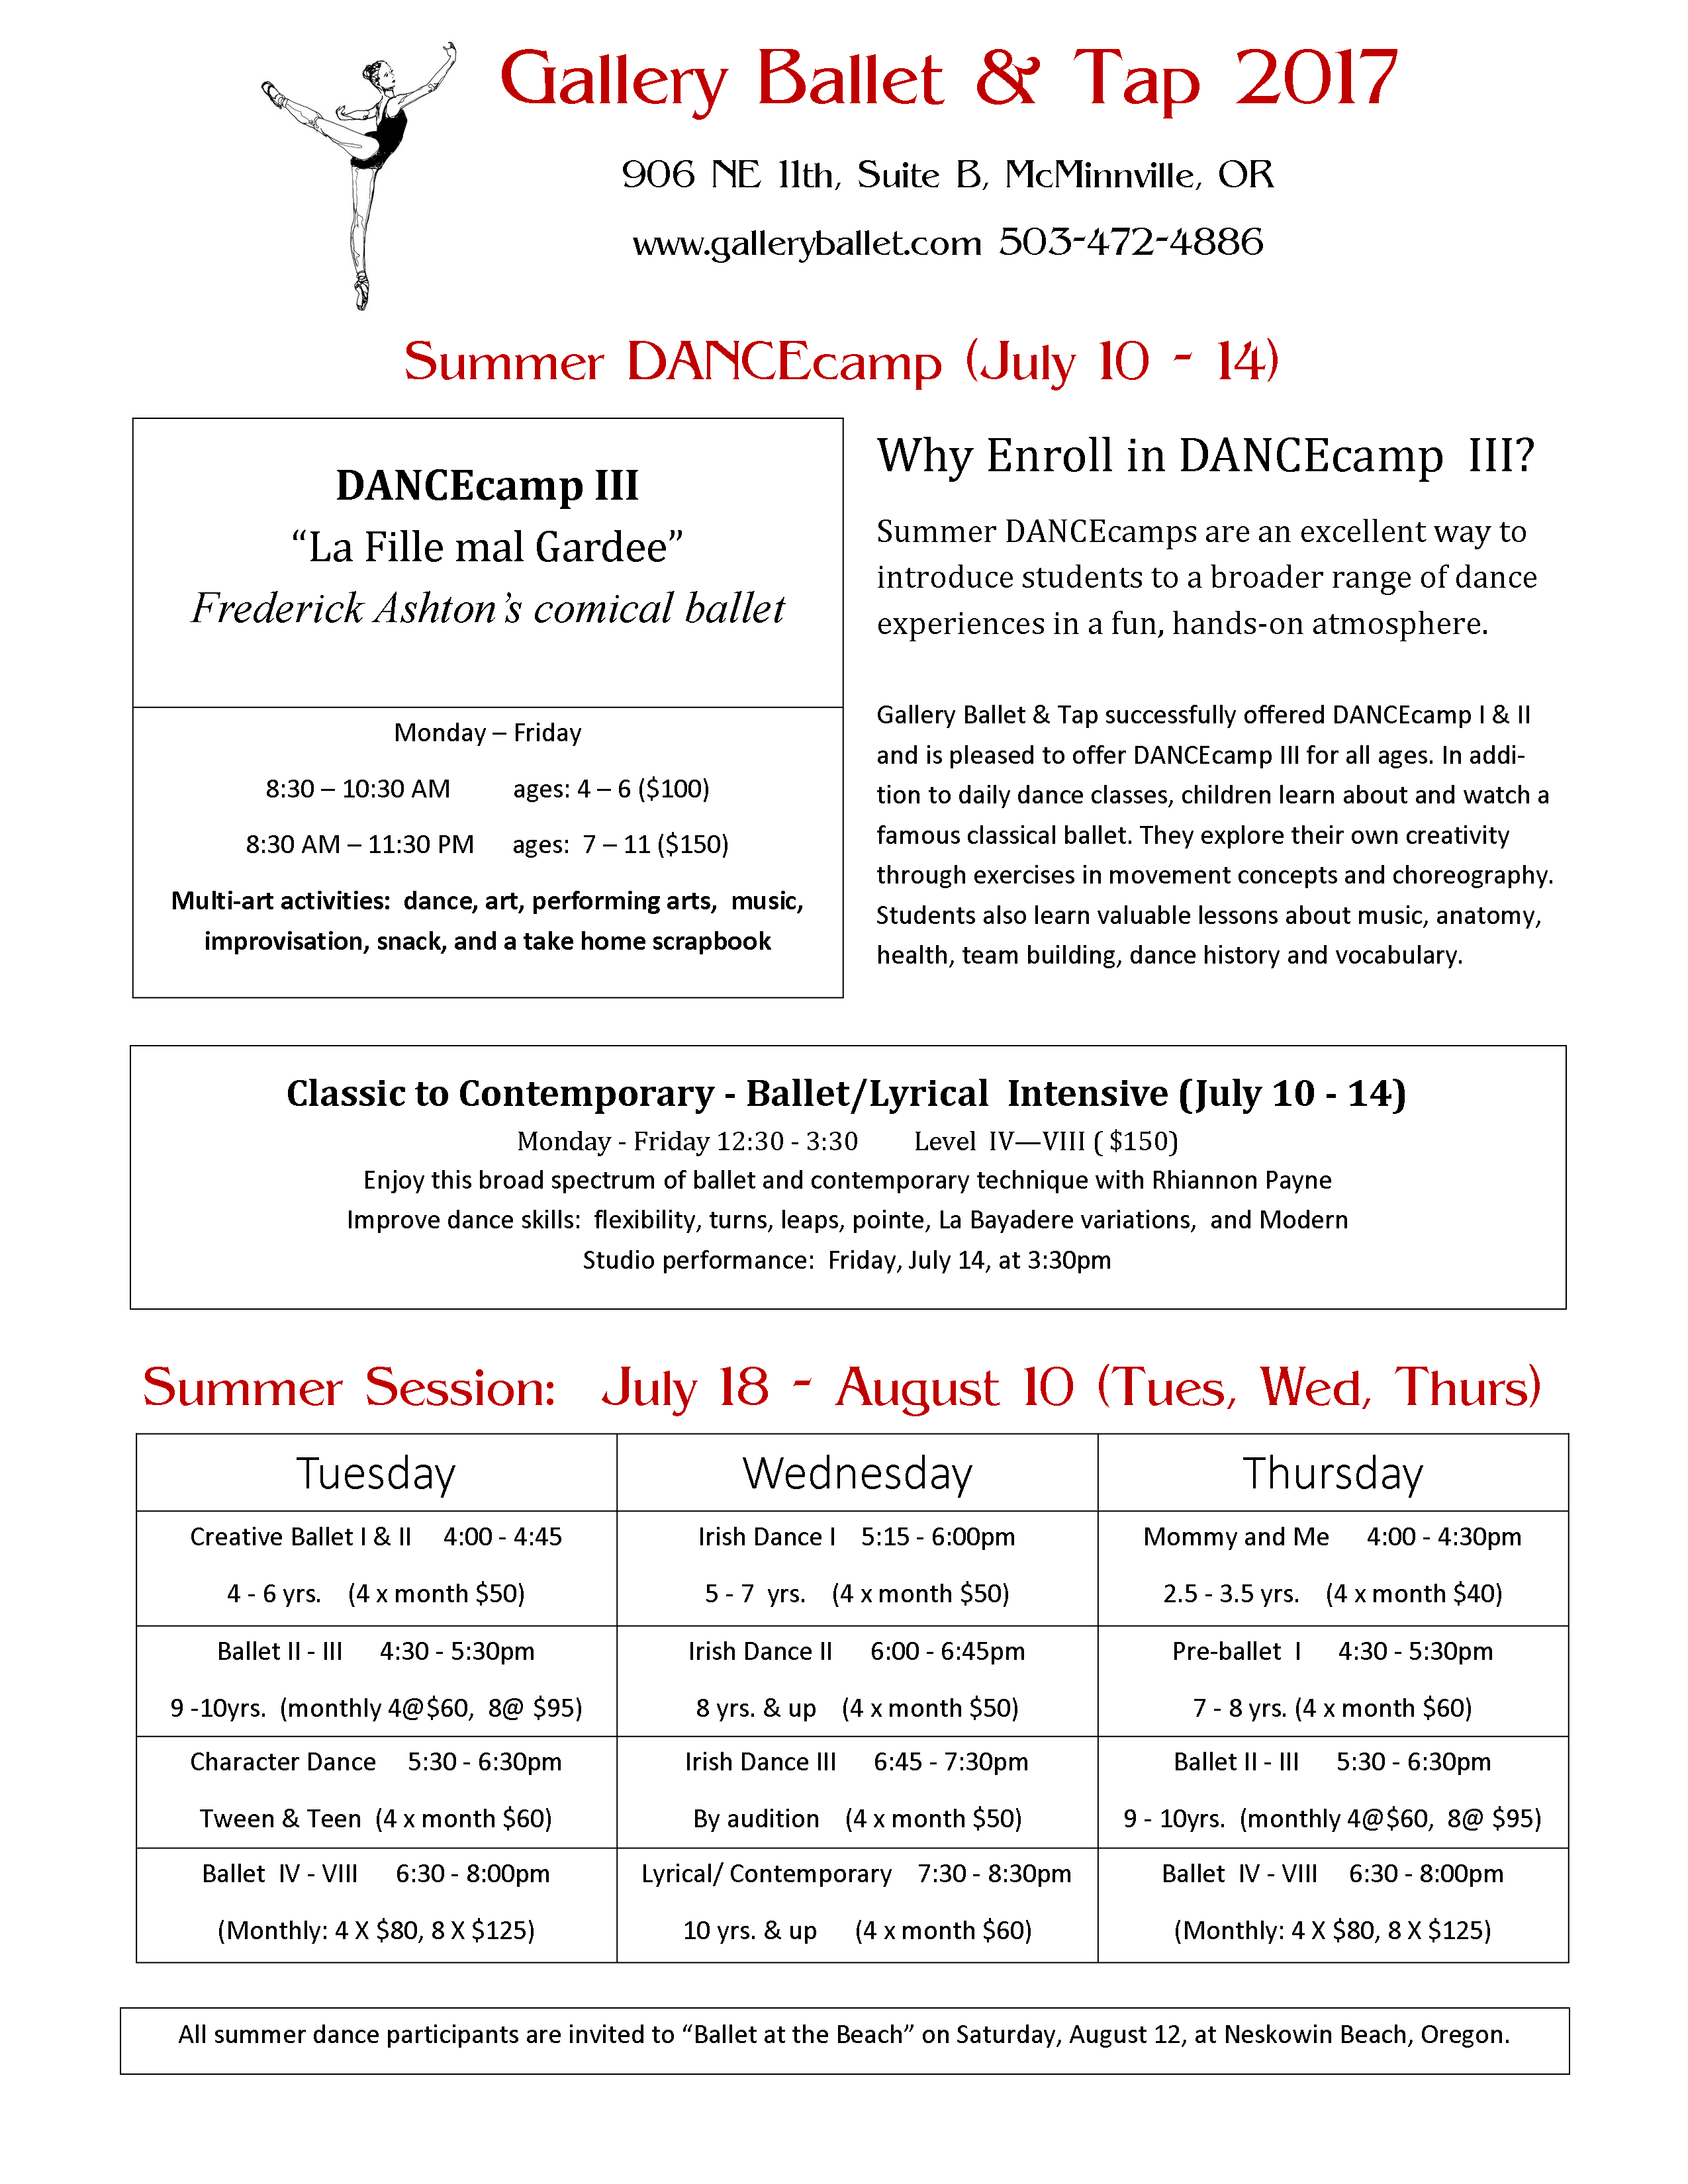 Check out our Summer Schedule!